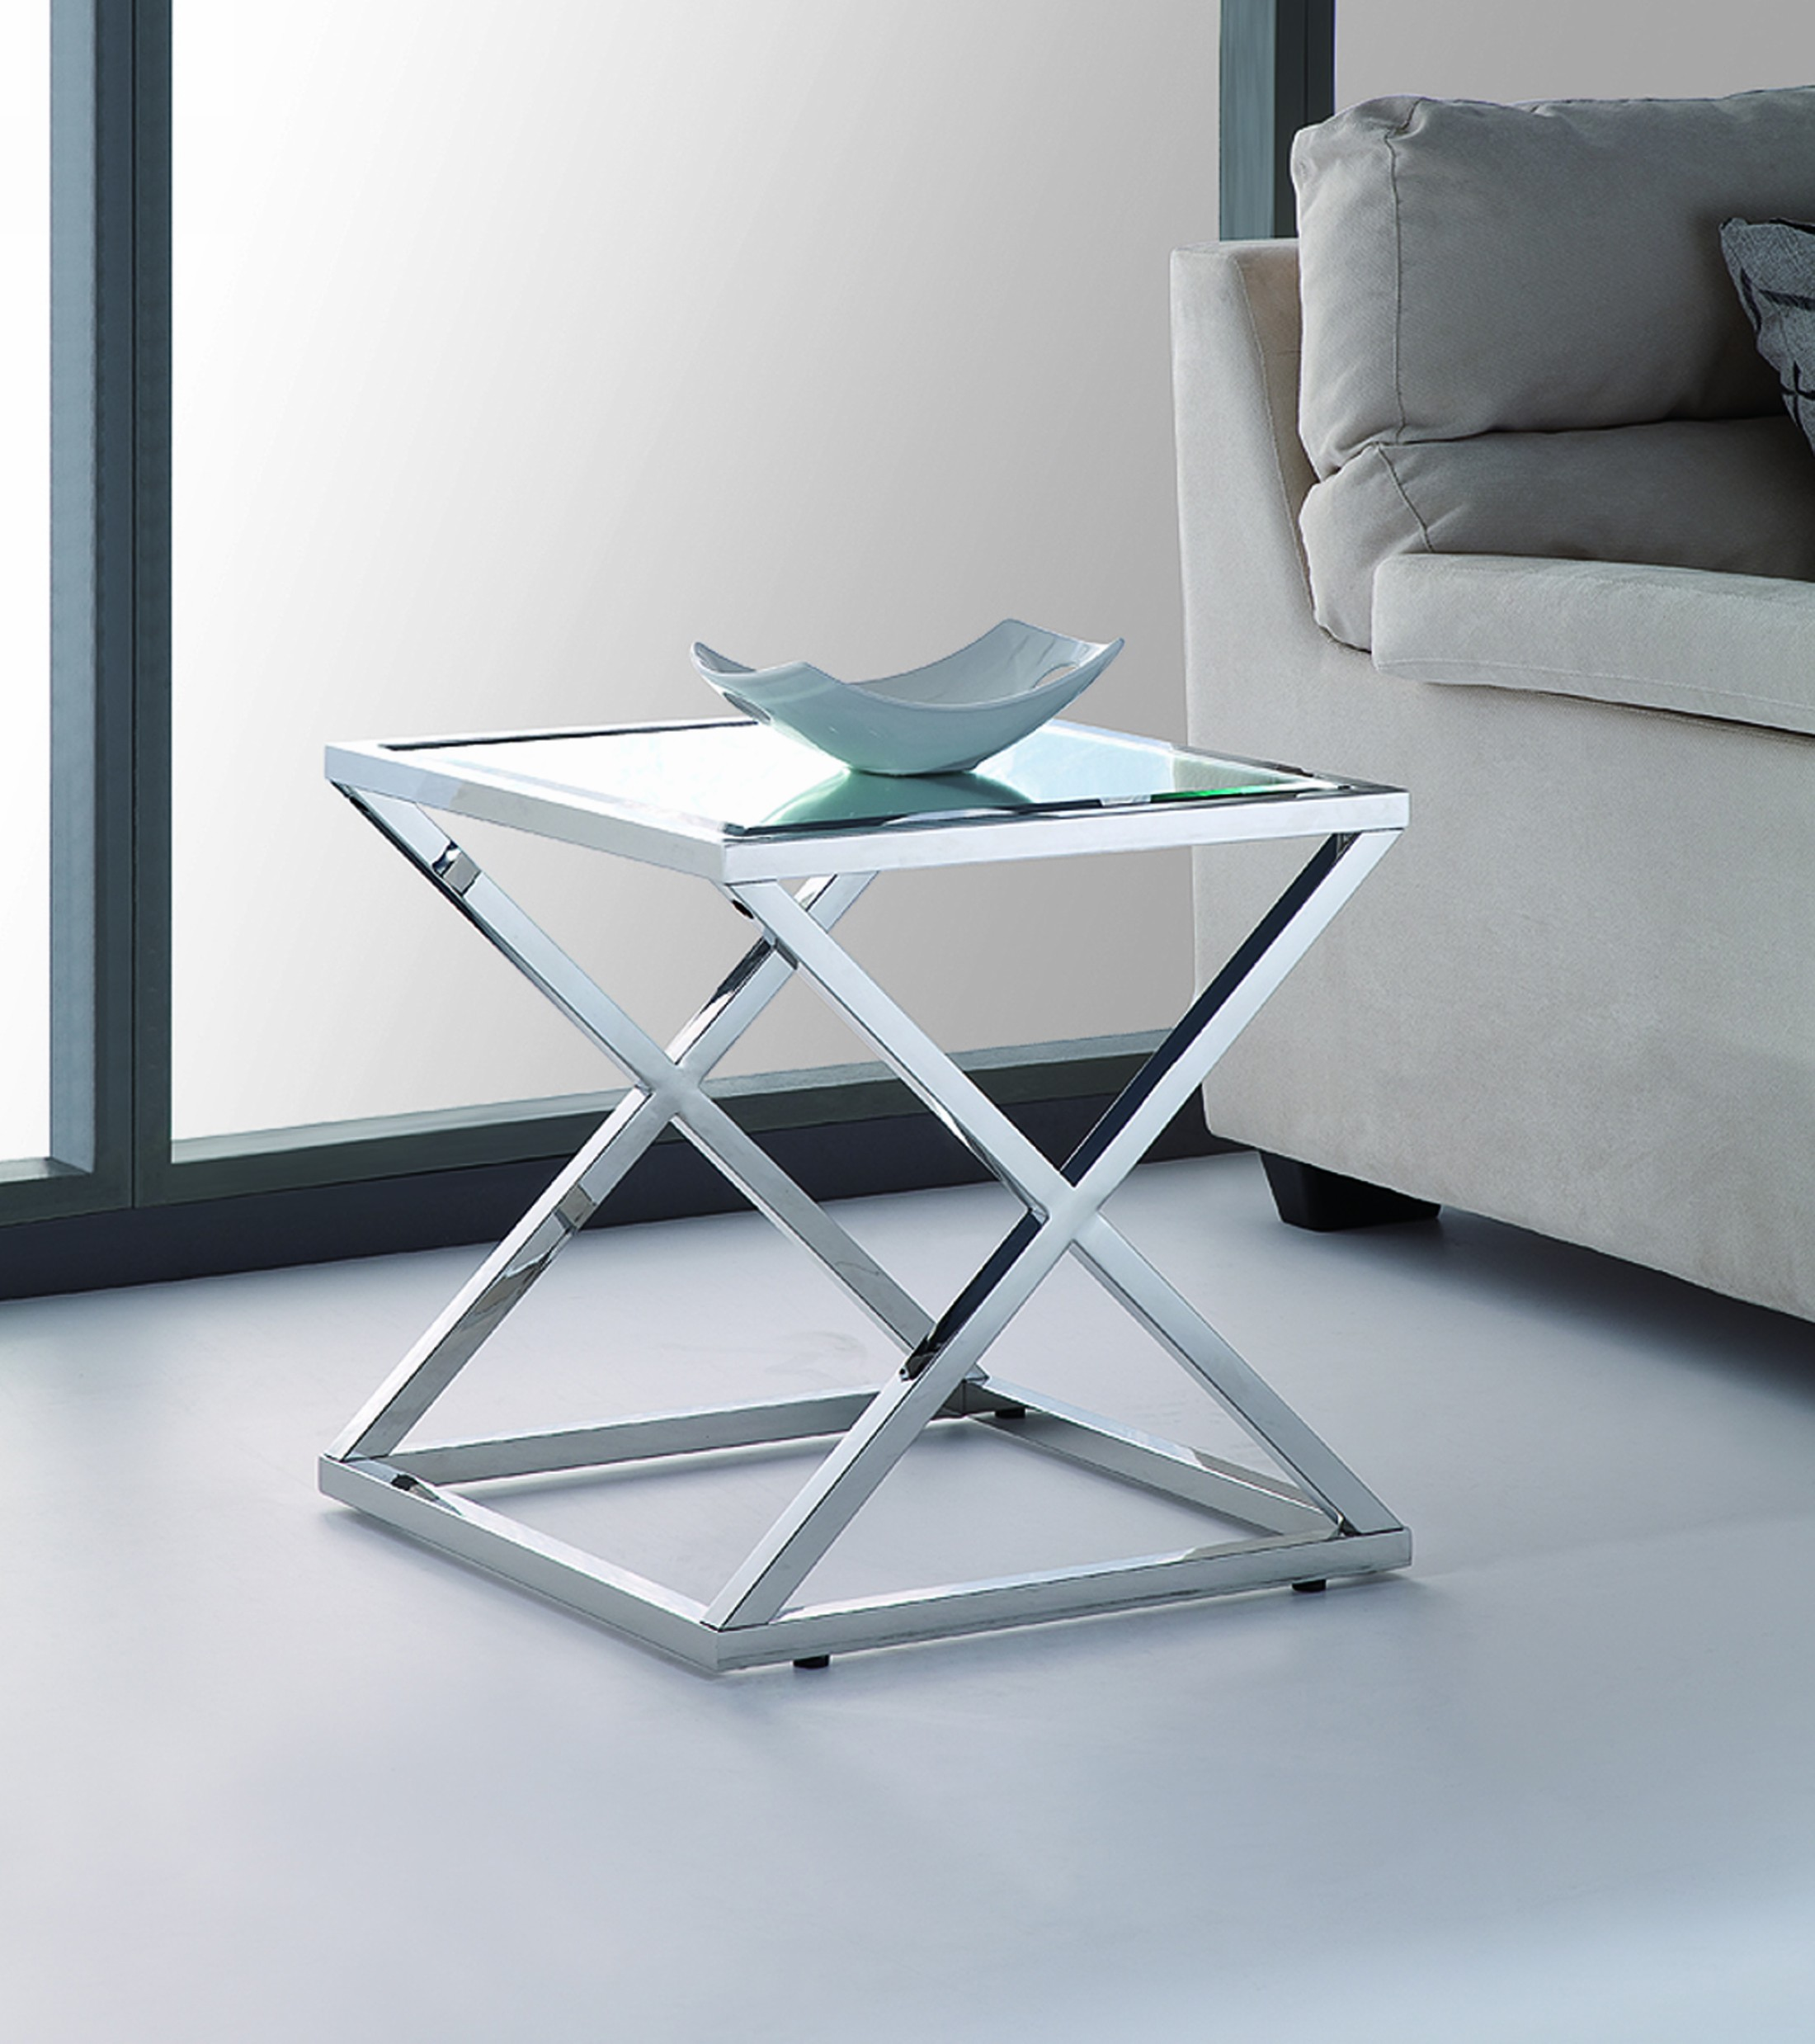 elegant modern metal and glass end table nice design amazing tables calgary big lots lamps industrial galvanised pipe laura ashley comforters pulaski furniture convertible sofa